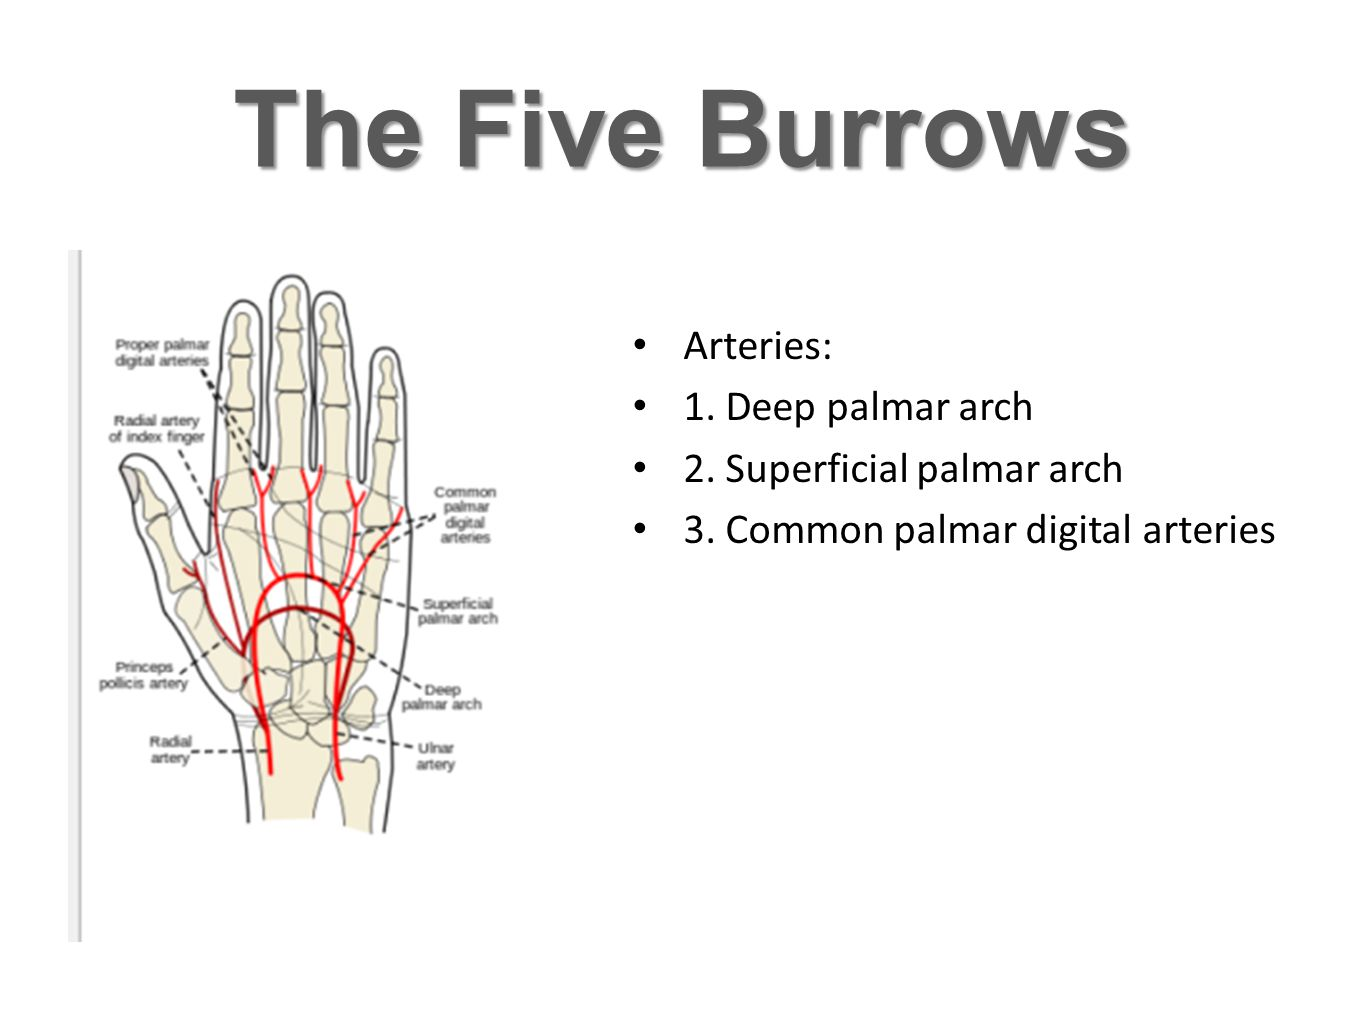 The Five Burrows Arteries: 1. Deep palmar arch